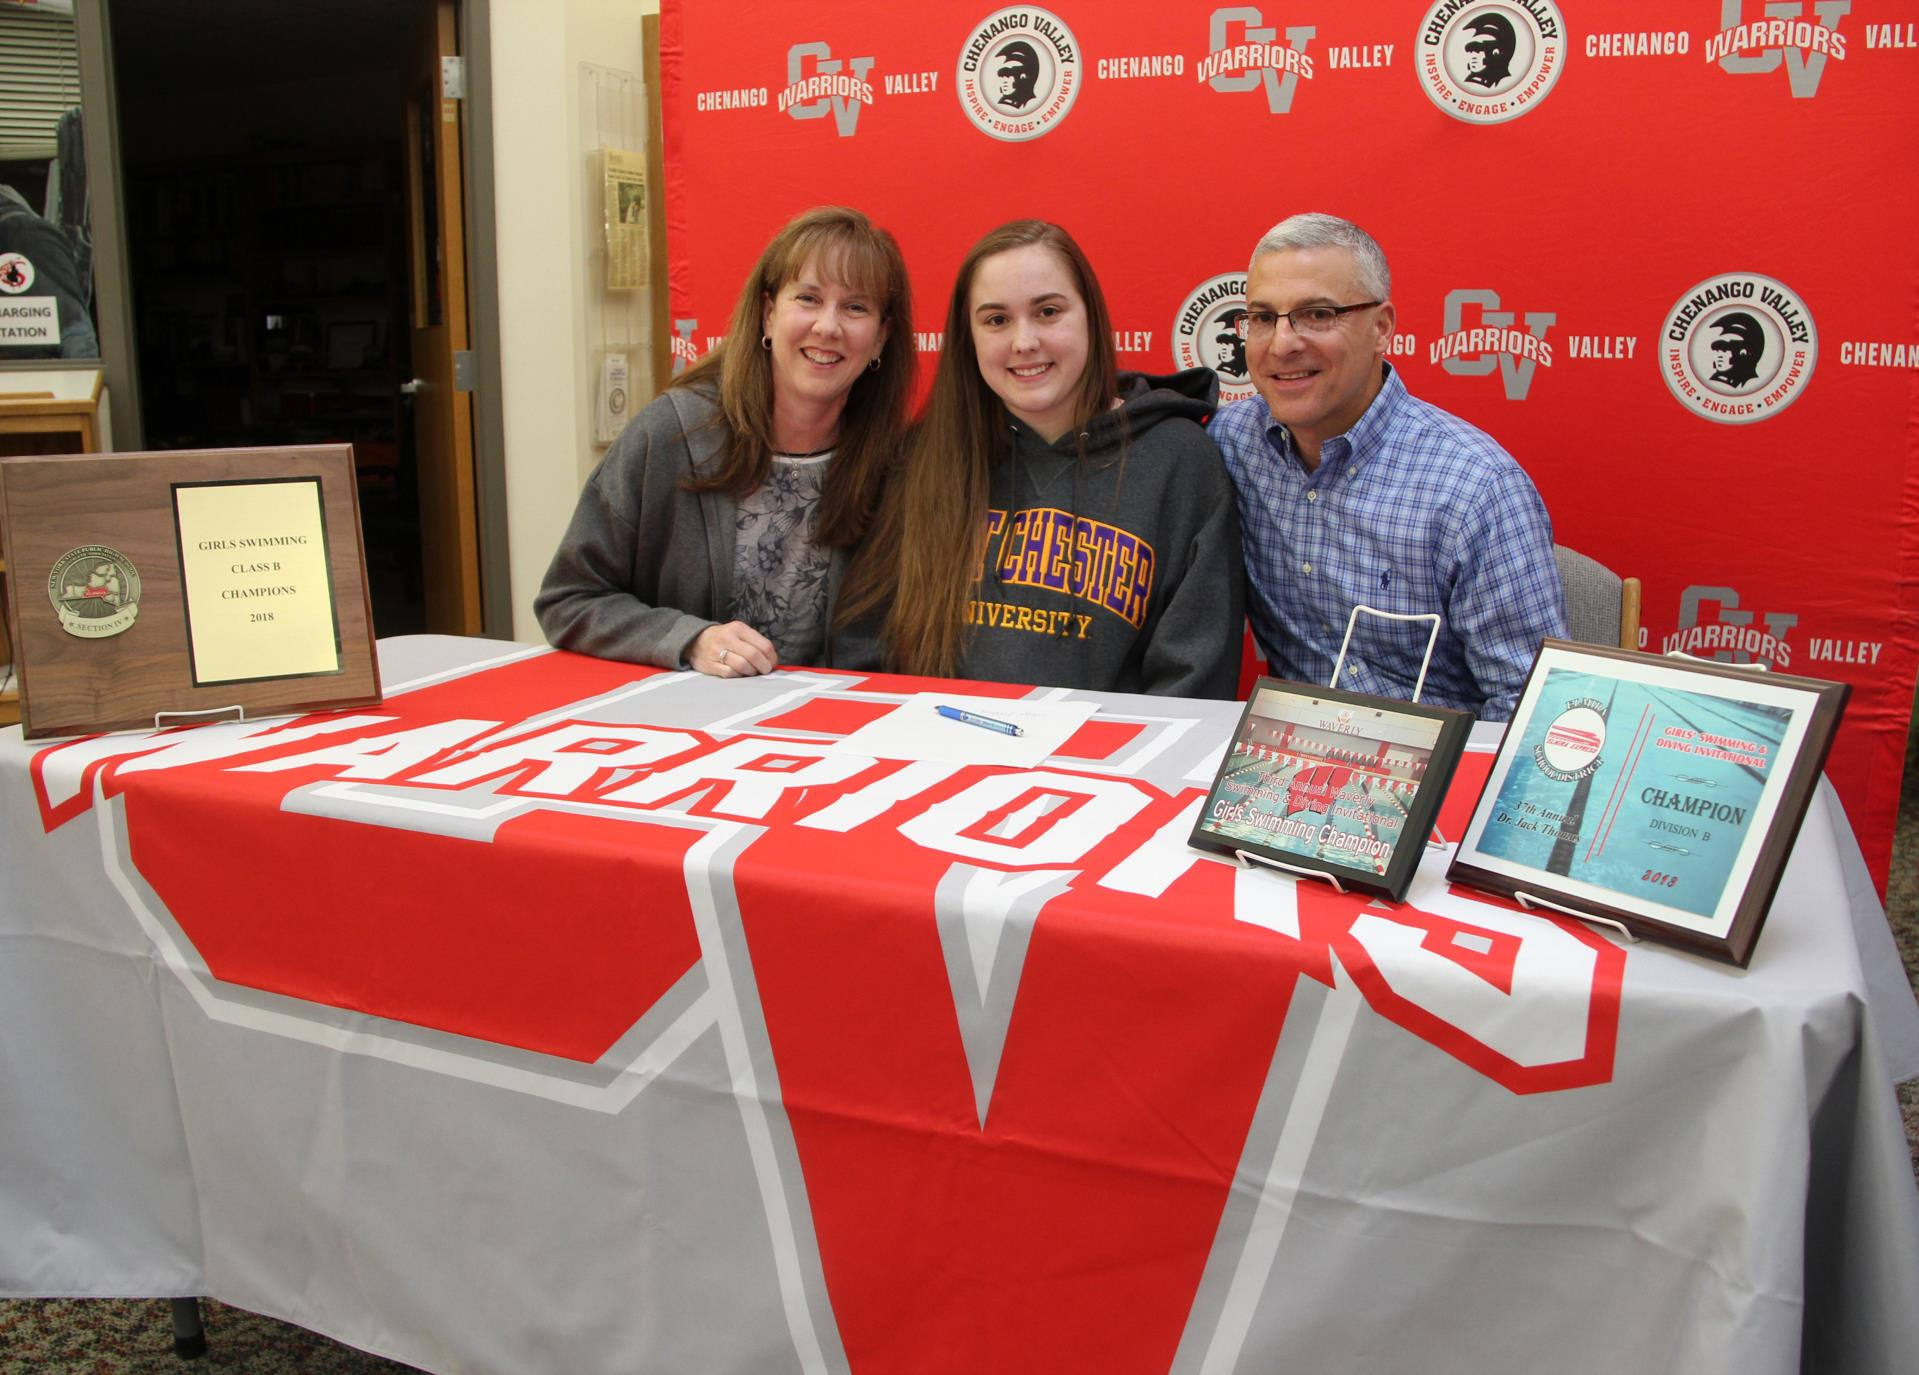 paige lettera and family members at signing